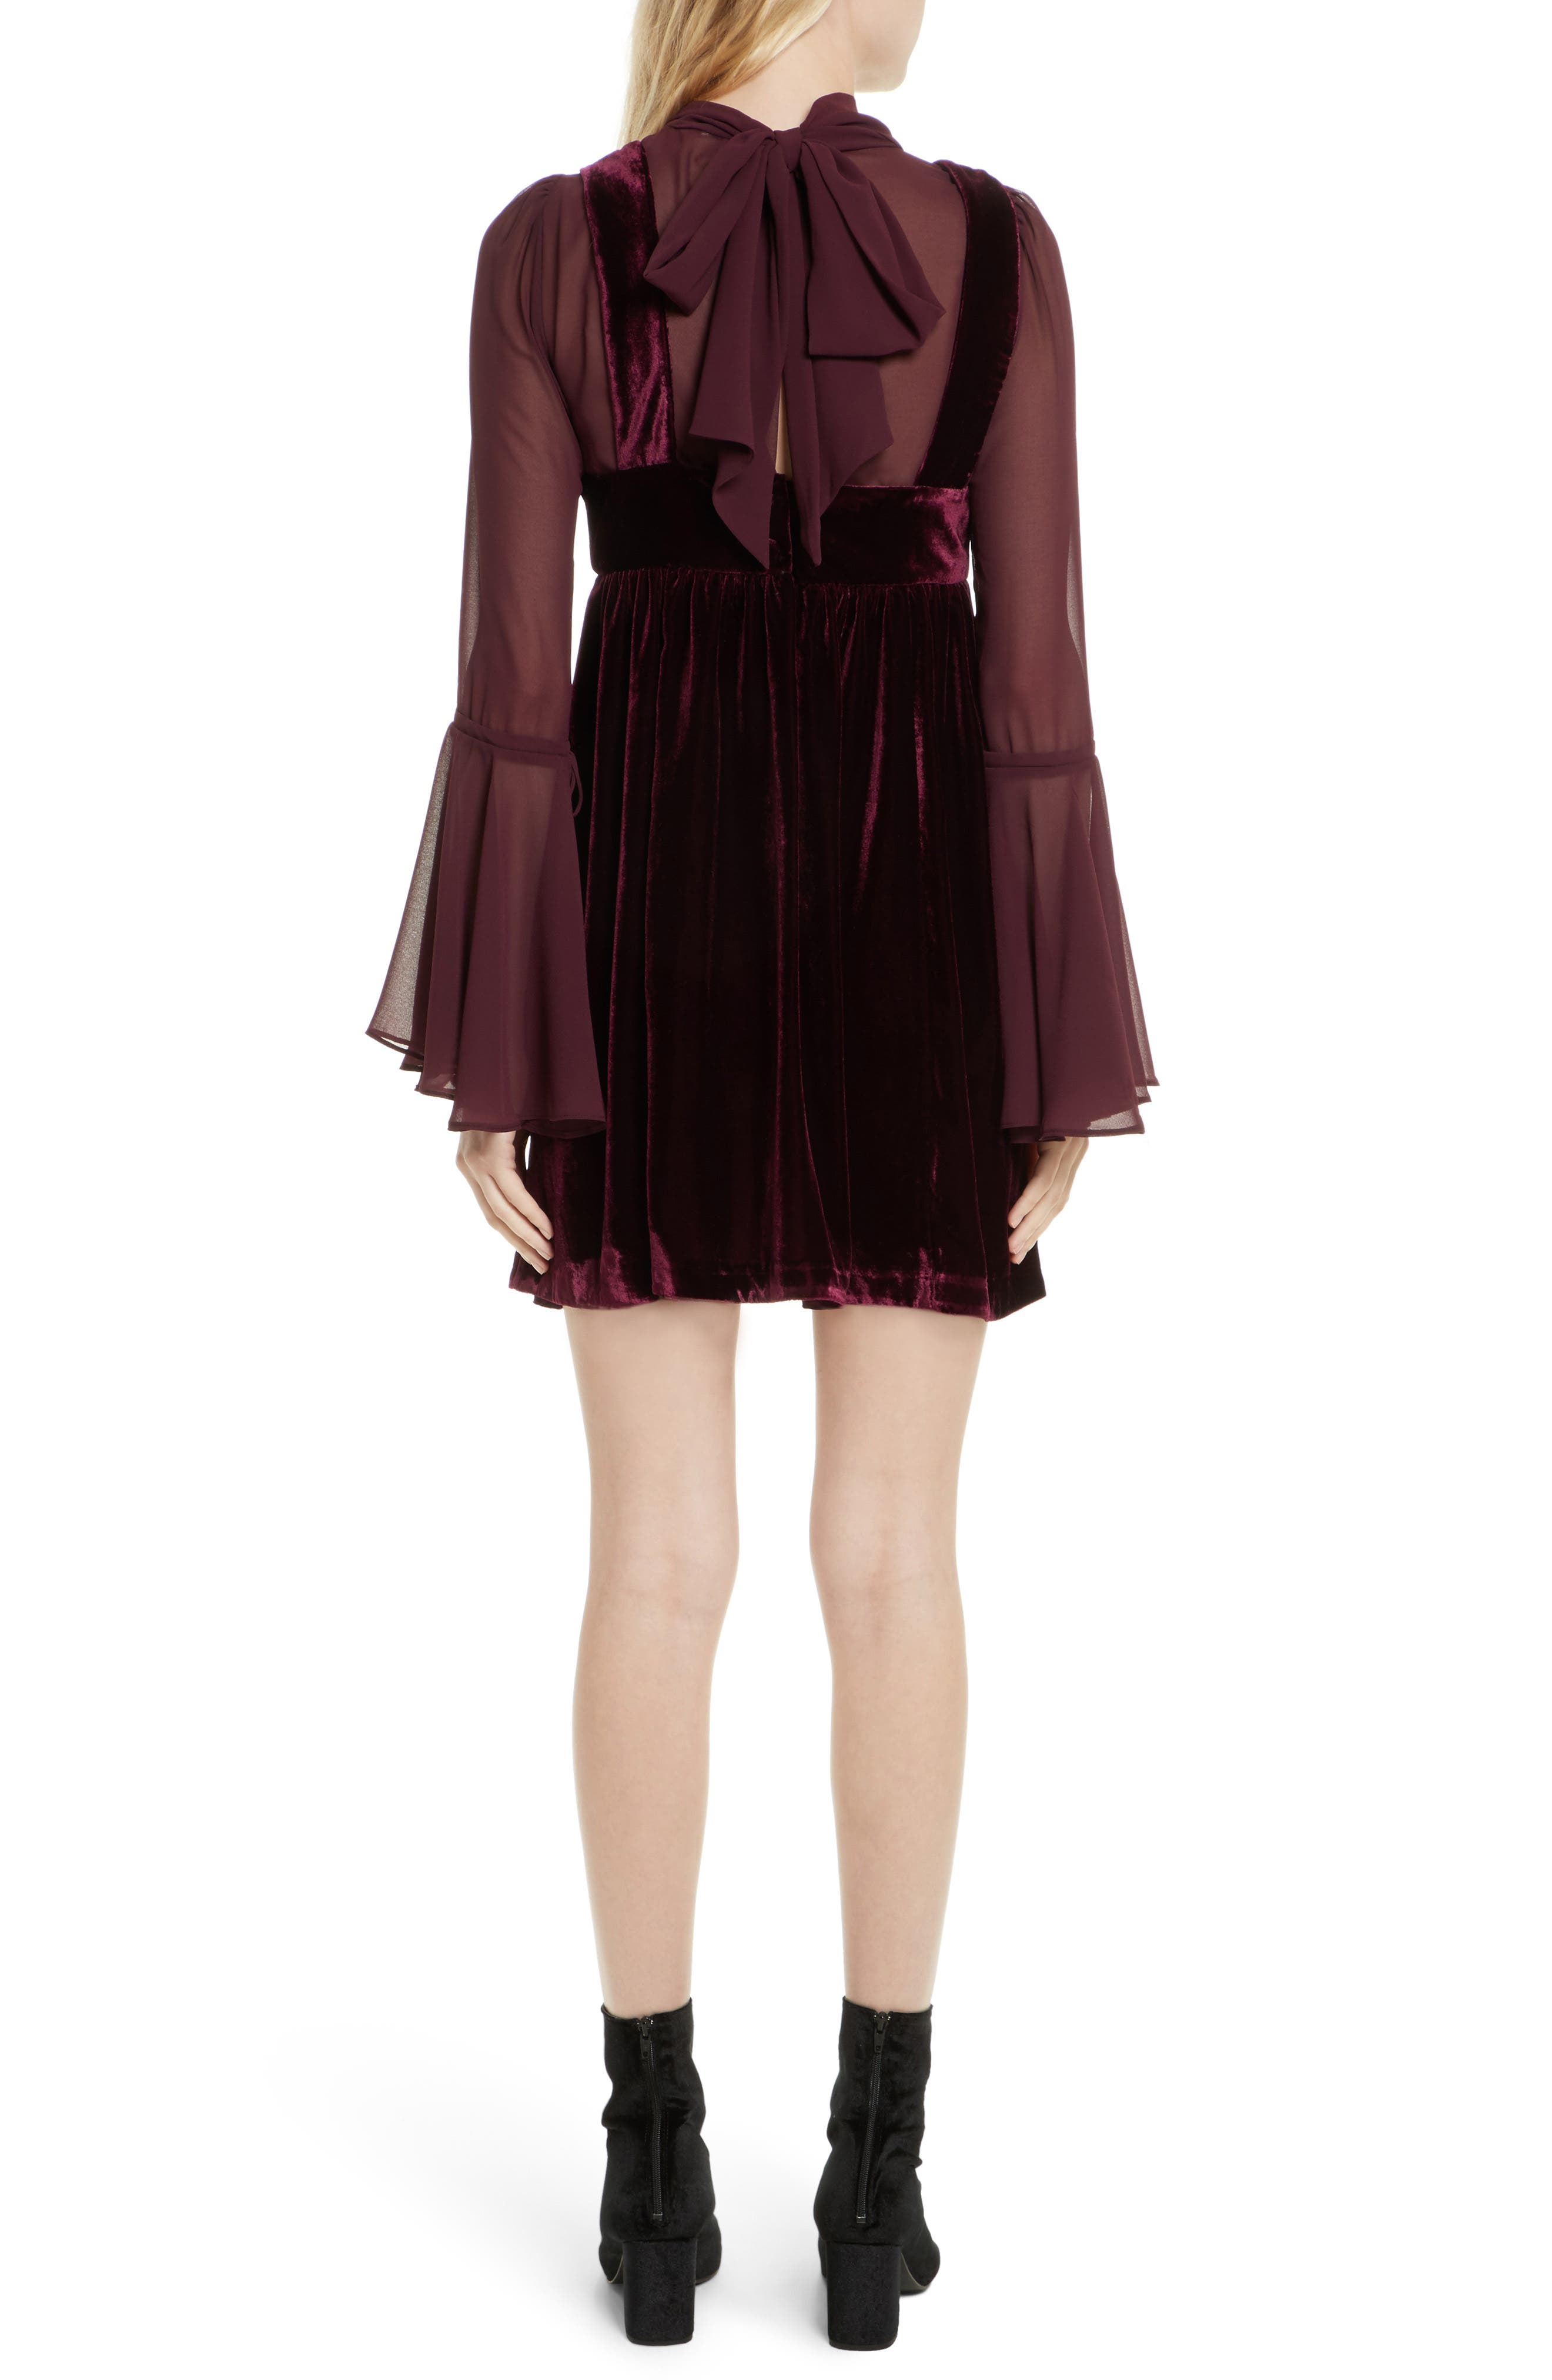 Counting Stars Minidress,                             Alternate thumbnail 2, color,                             Wine